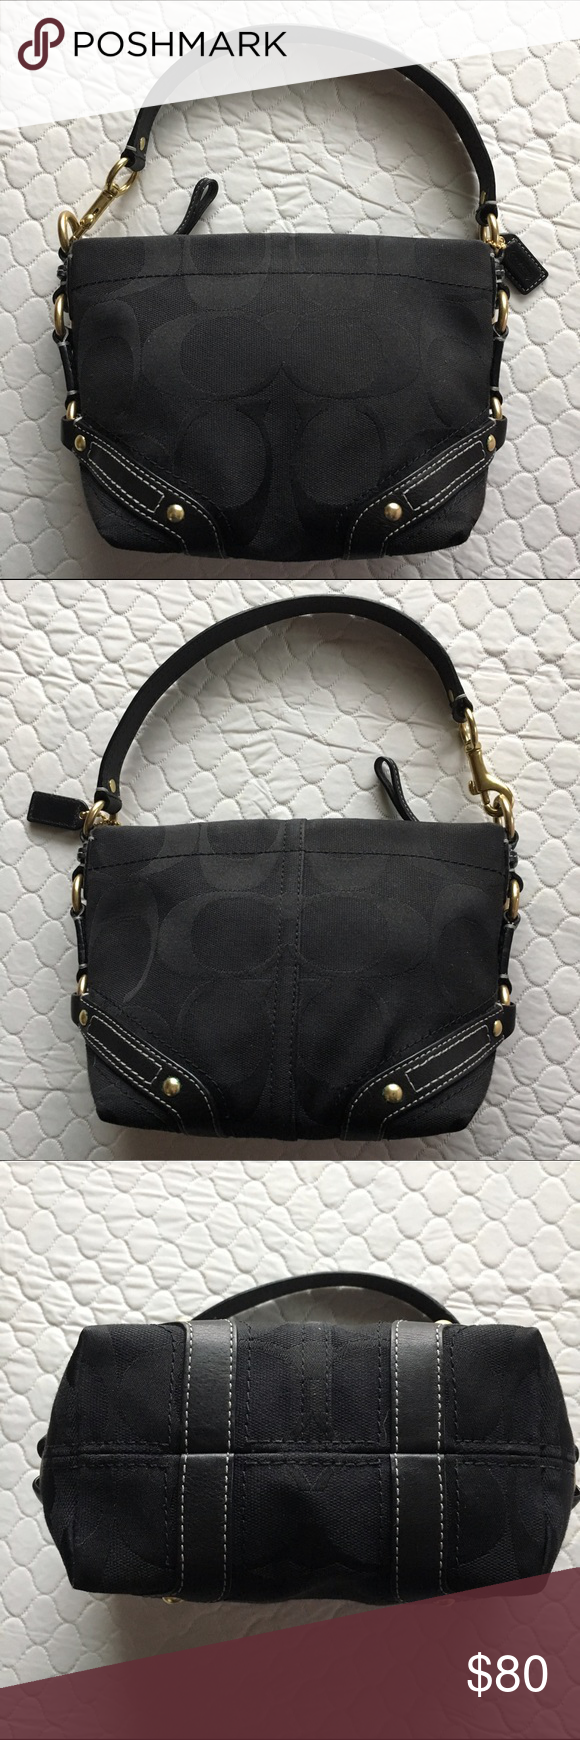 """COACH Hobo Bag Black Jacquard Logo fabric with leather trim and gold tone hardware. Top zip. Inside there is one slip pocket. Measures 9""""L x 3.5""""W x 6""""H.   No rips, tears, flaws or signs of wear. EUC Coach Bags Hobos"""